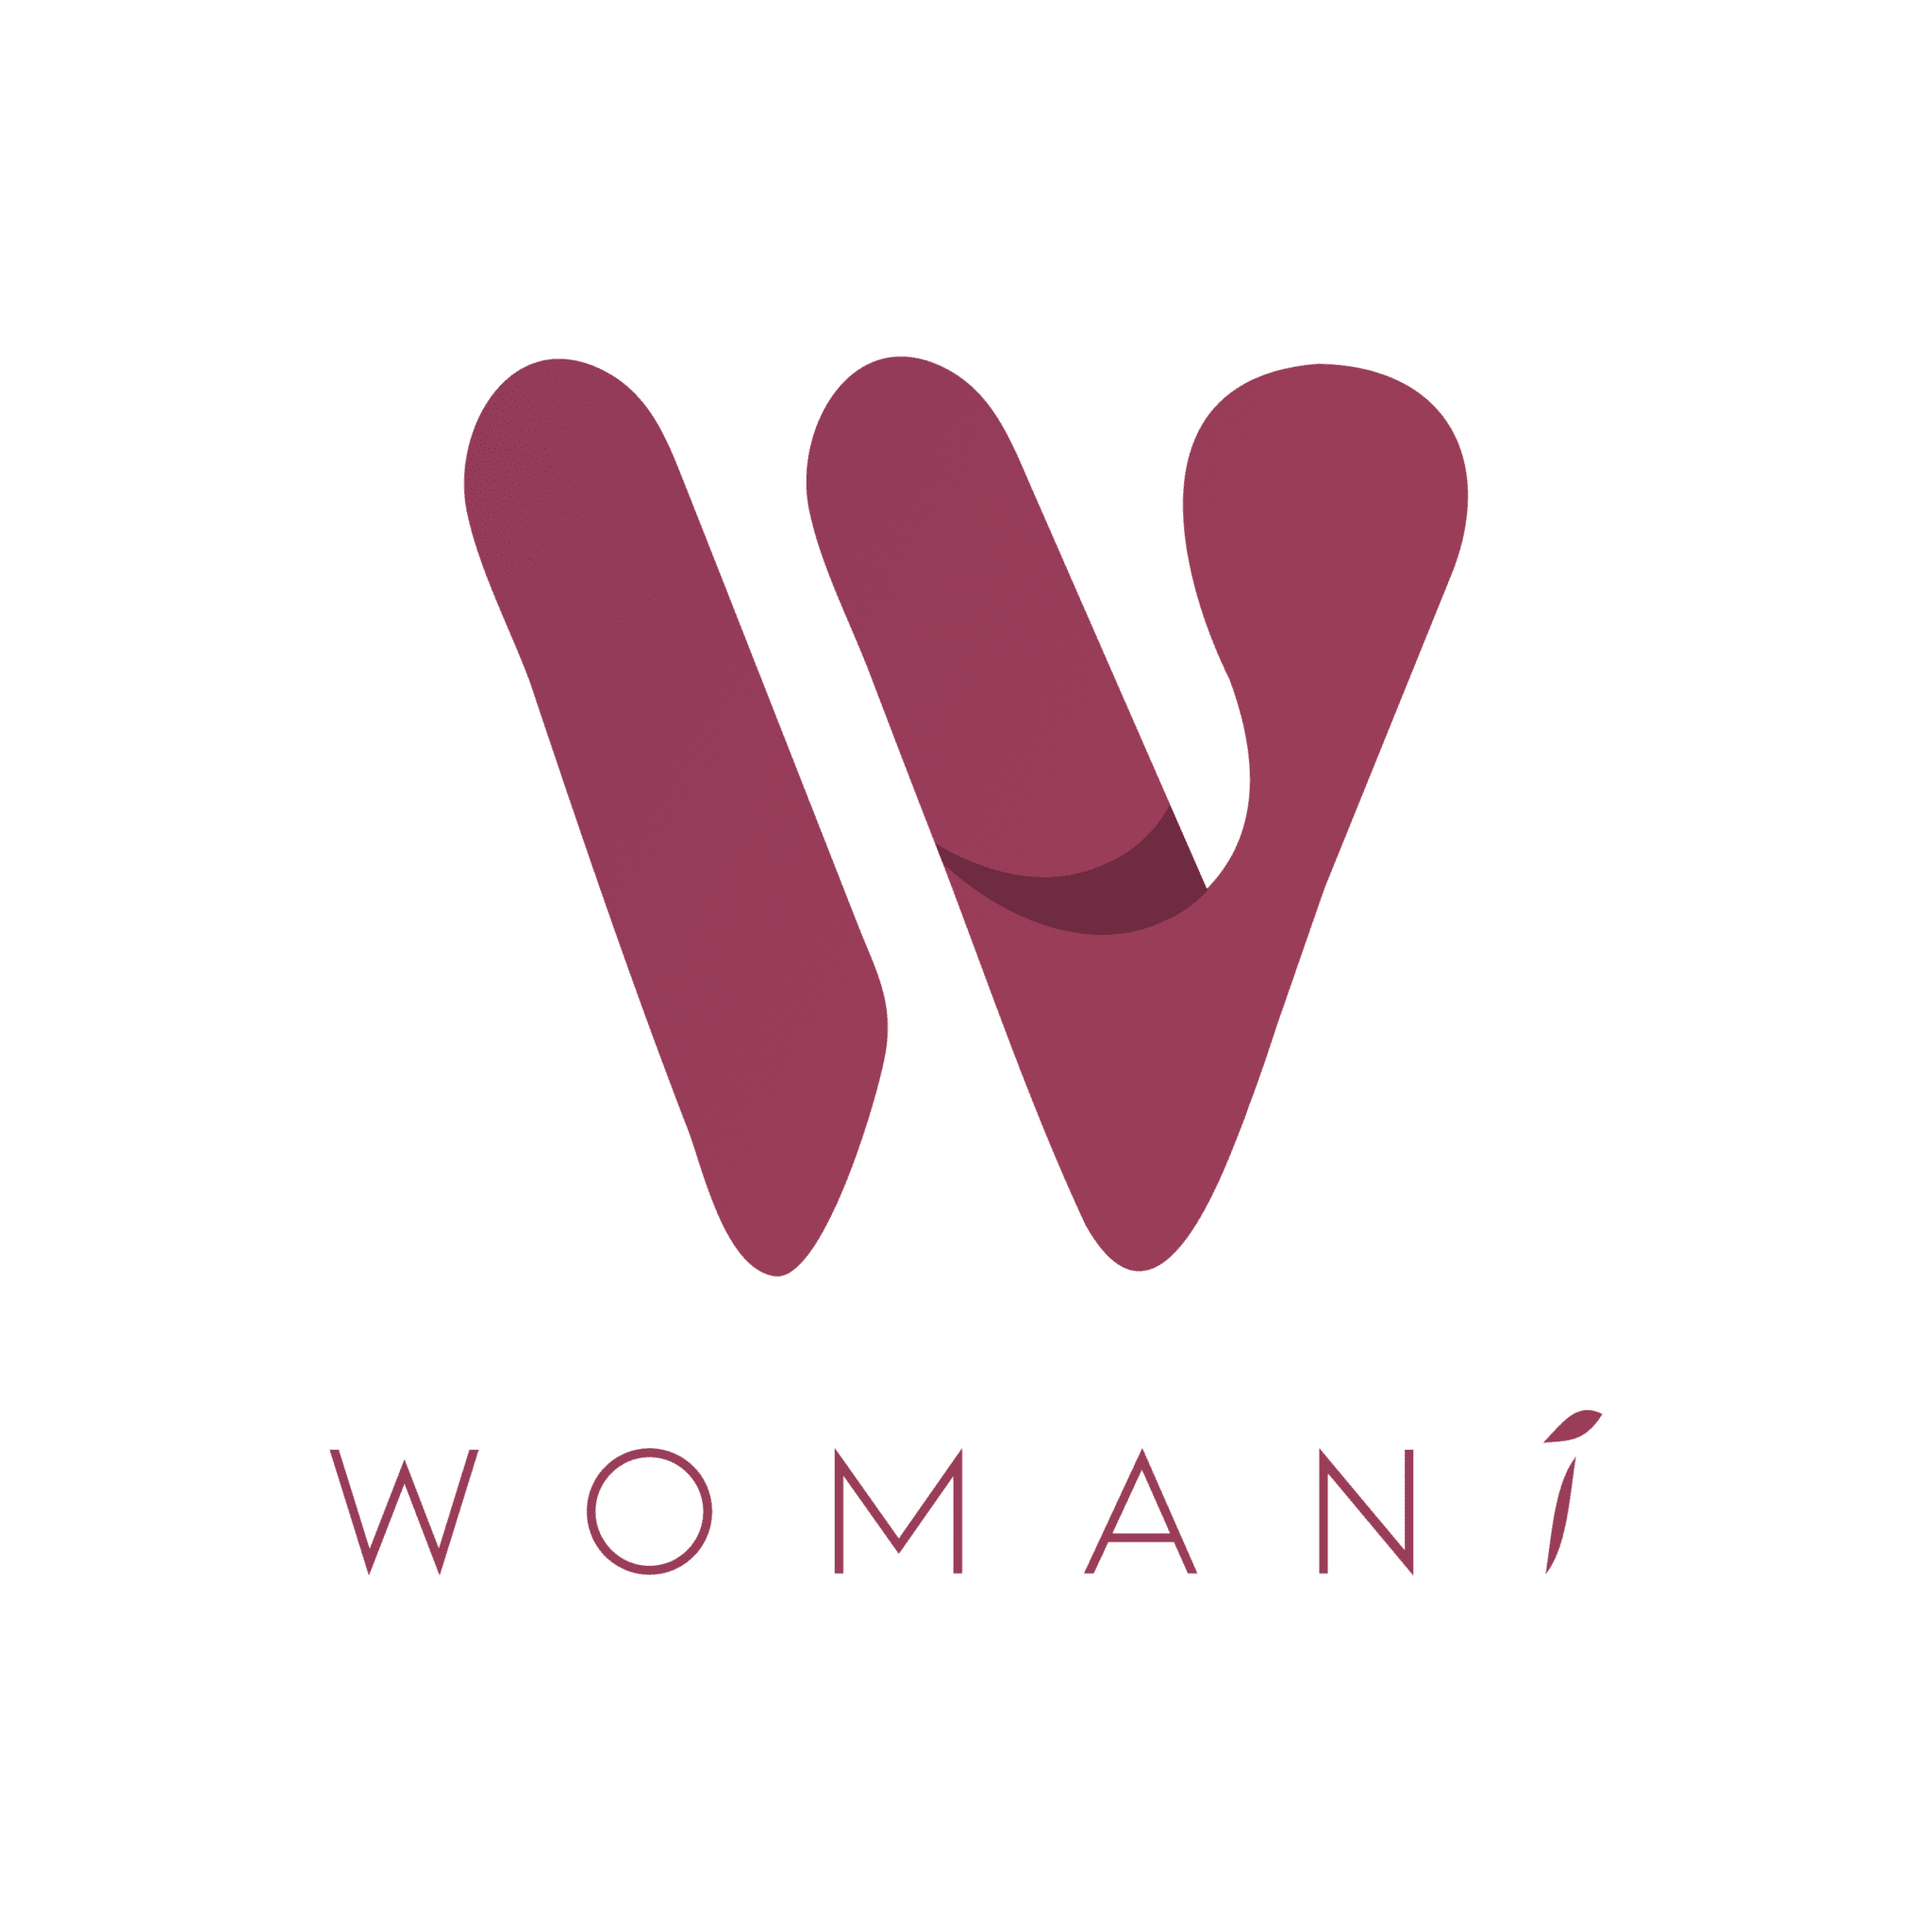 Women in Islamic Business and Finance Womani Awards 2019 – 17th June 2019